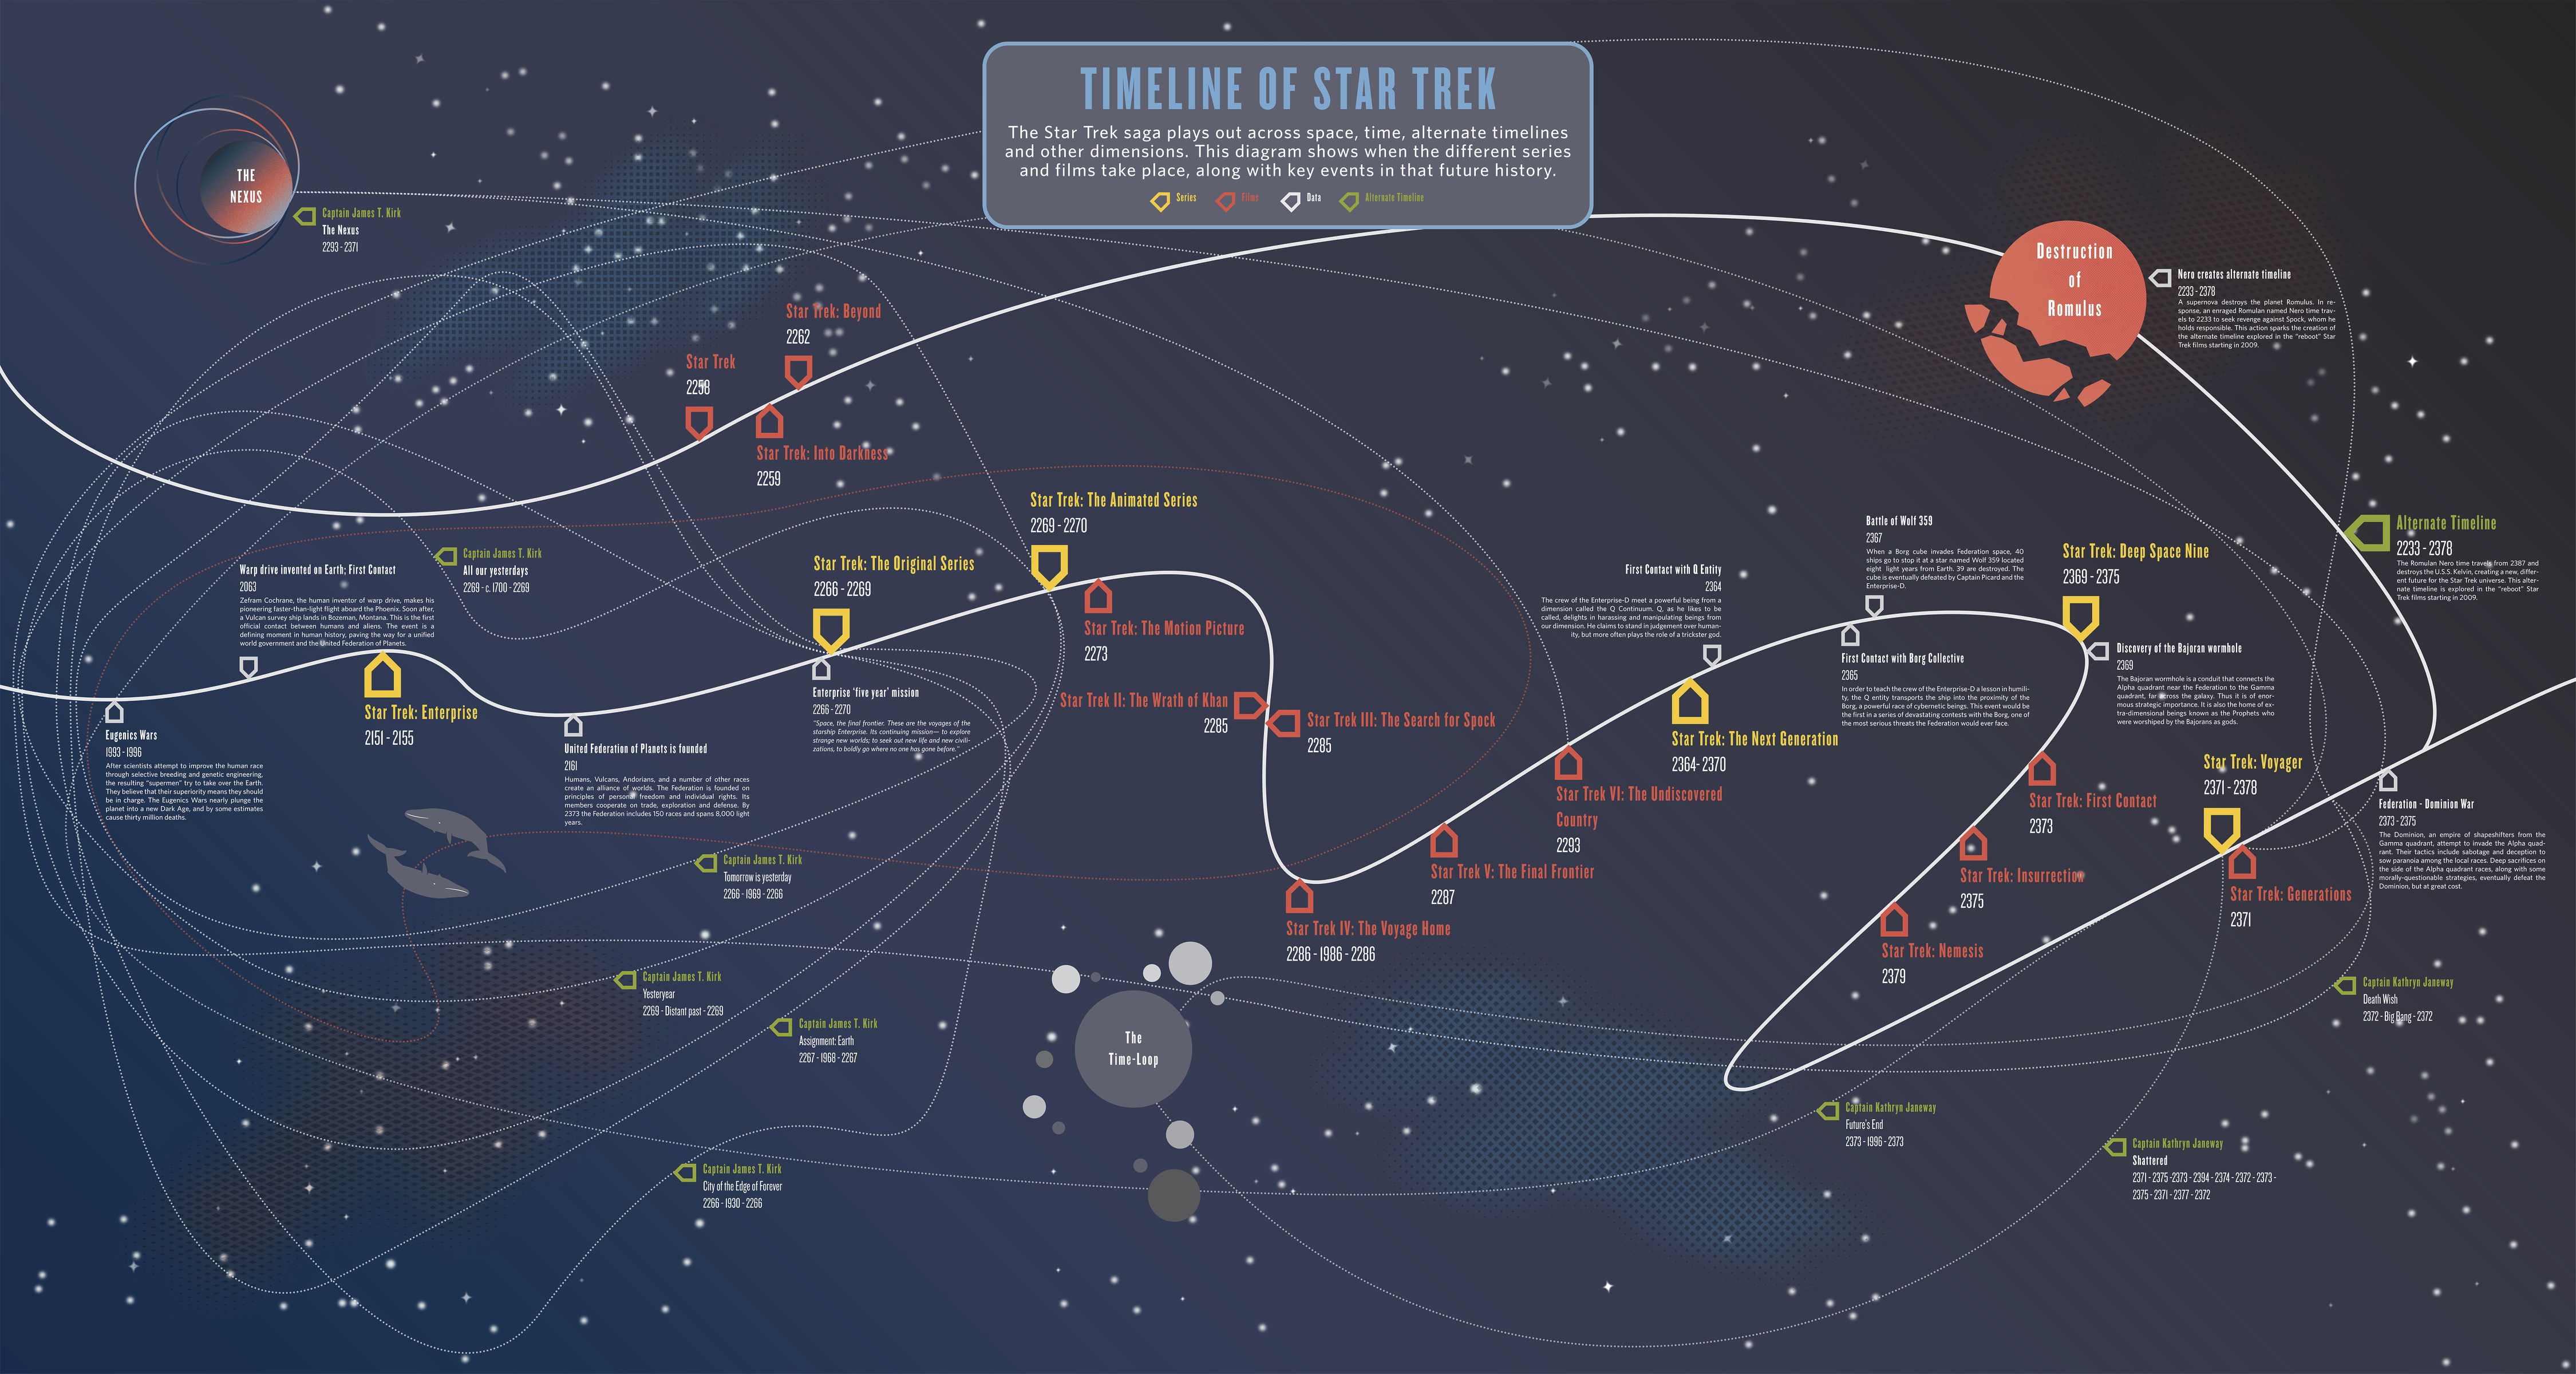 A timeline created for the MoPop (EMP) here in Seattle, it displays the chronological events of all the Star Trek captains from the series and moveis.